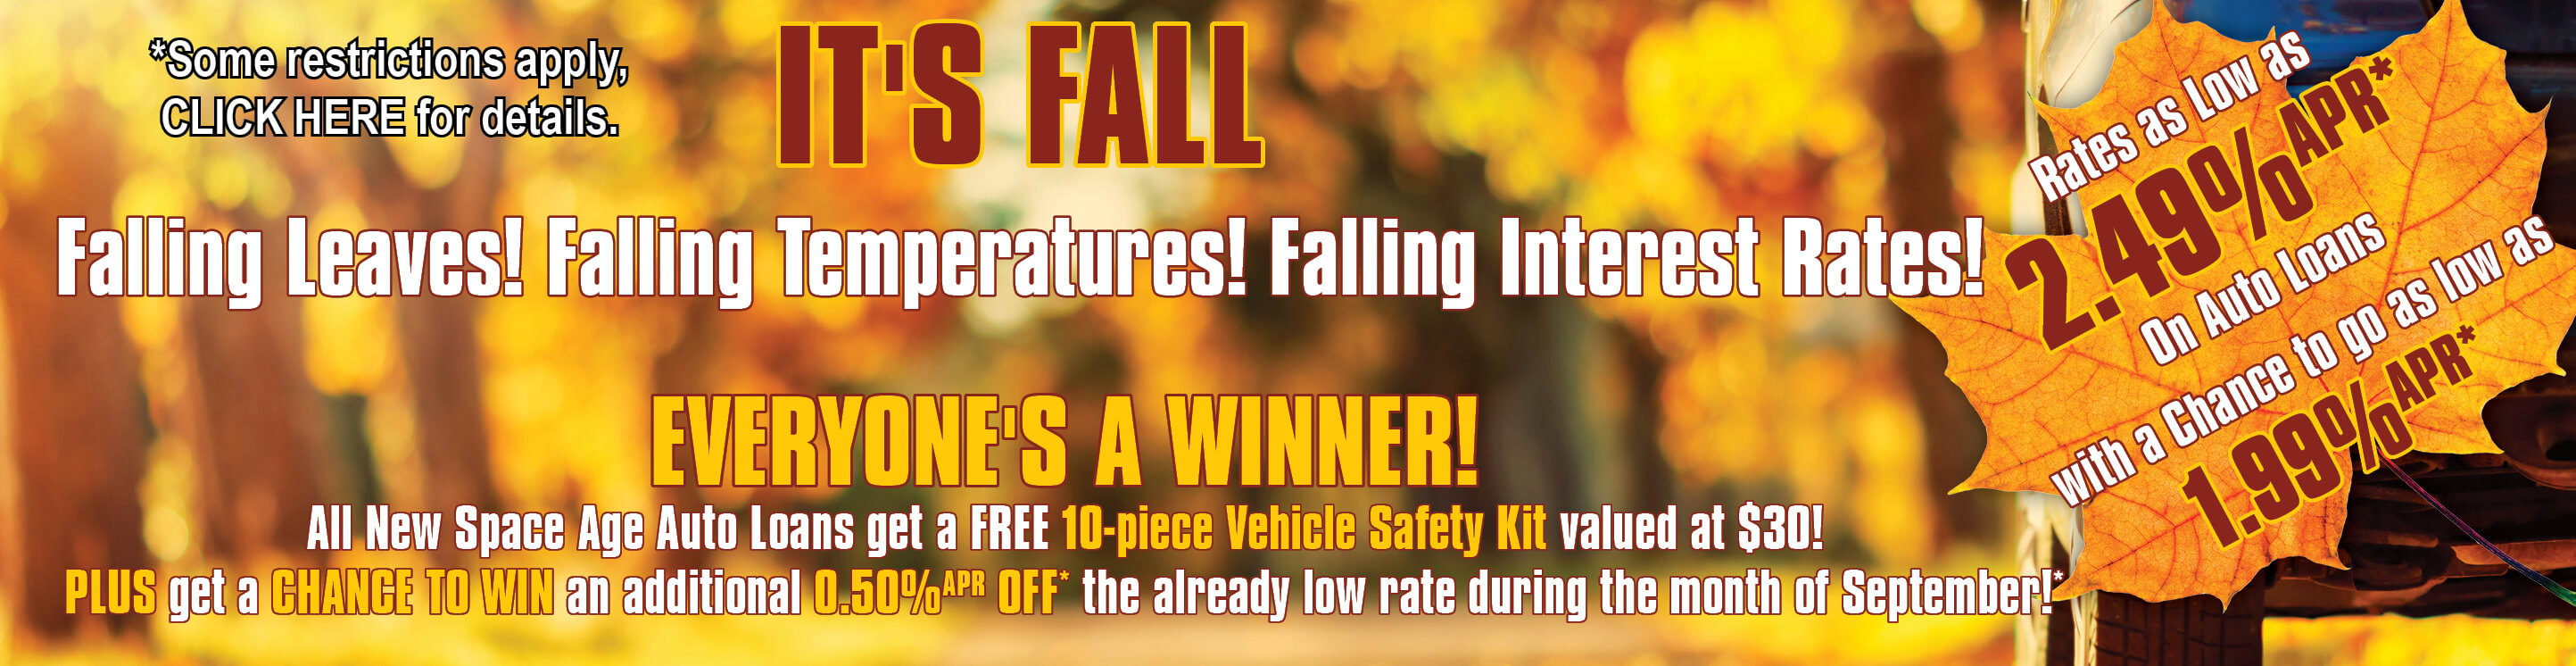 IT'S FALL Falling Leaves! Falling Temperatures! Falling Interest Rates! Rates as Low as 2.49% APR* on Auto Loans with a Chance to go as low as 1.99% APR*